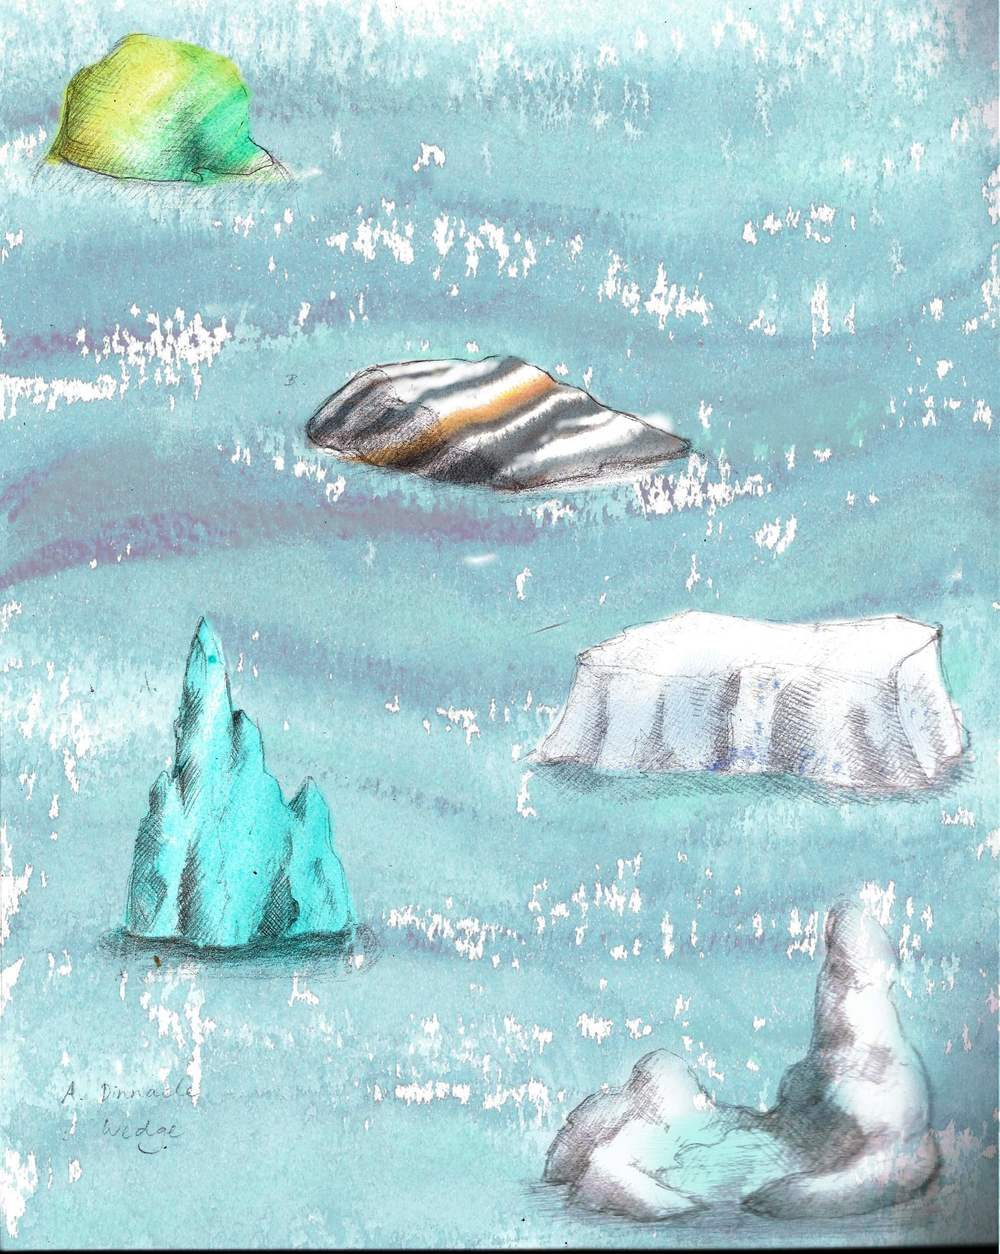 iceberg shapes colors trial1.jpg